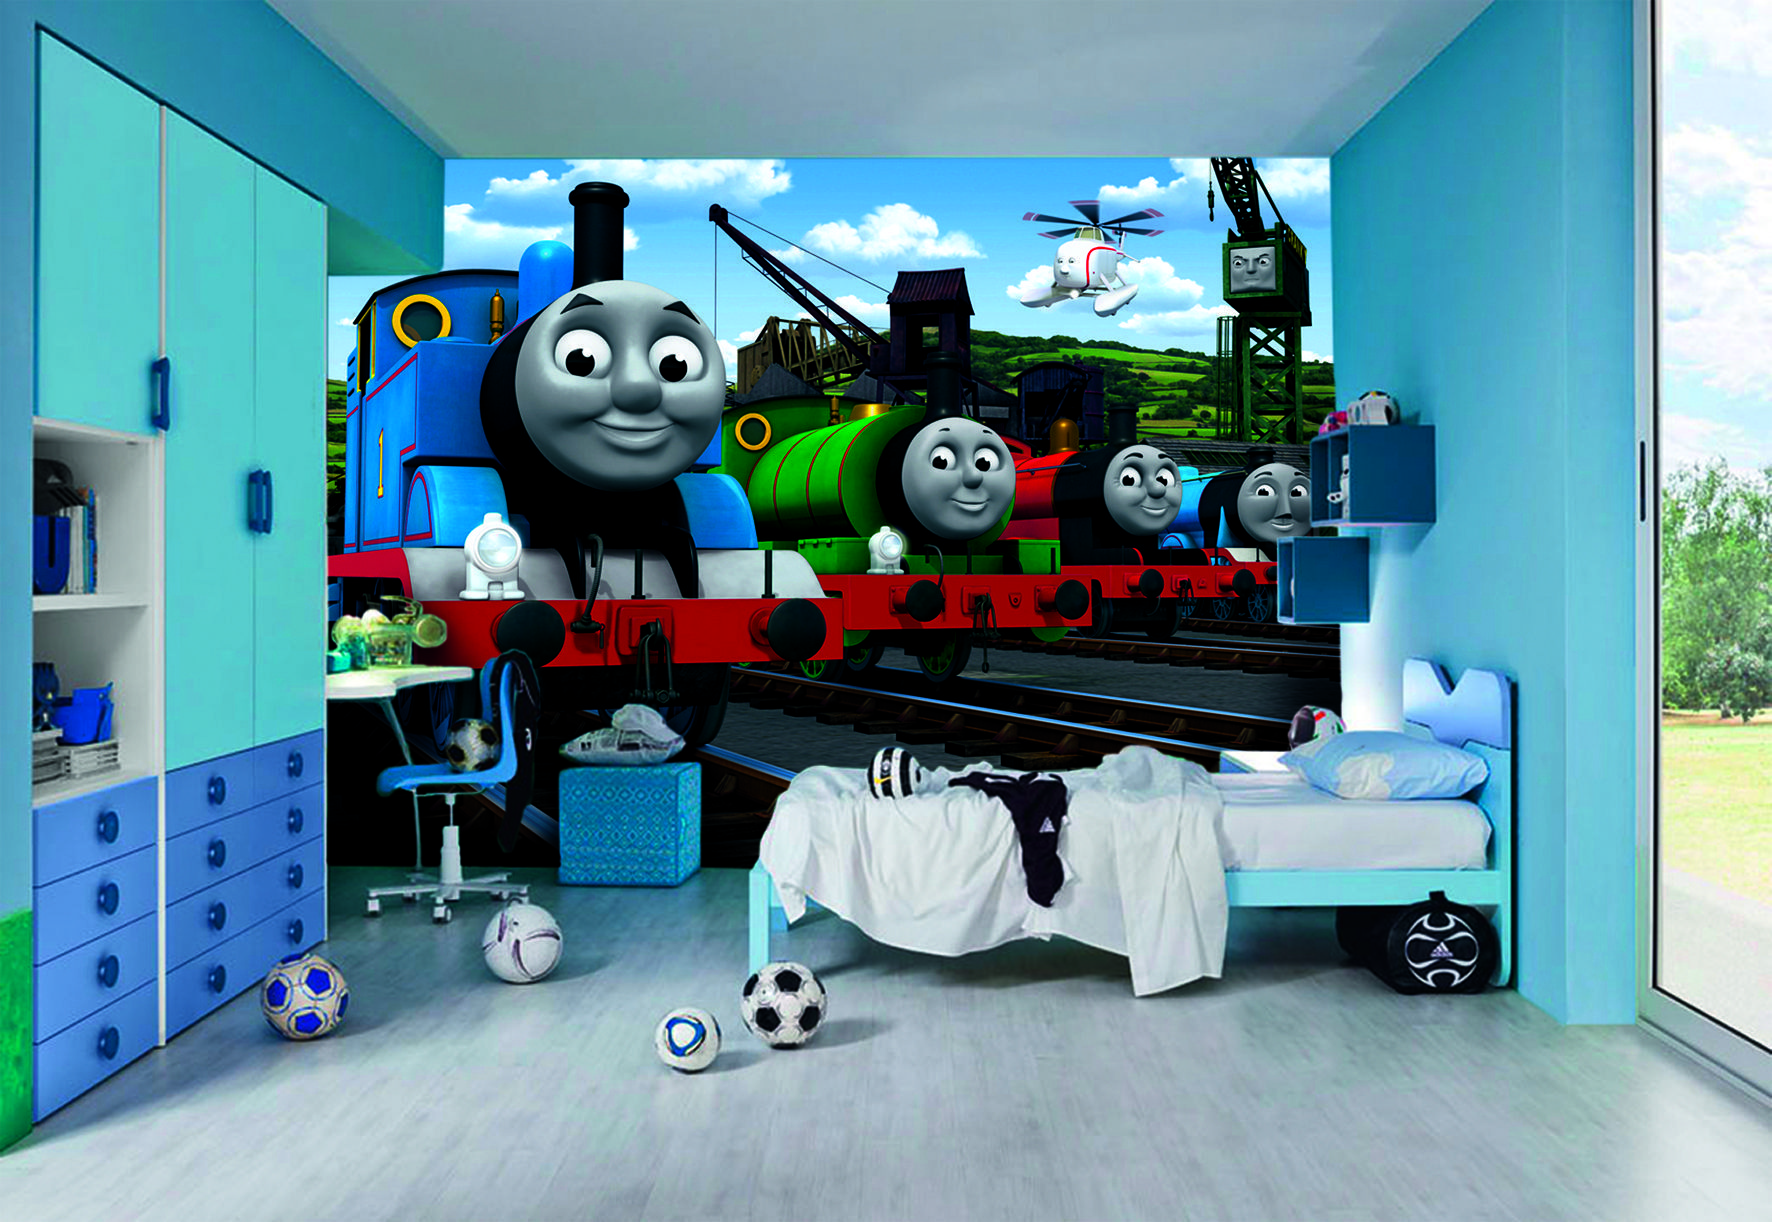 Thomas The Tank Engine Bedroom Wallpaper Mural 8ft X 6 6 Train